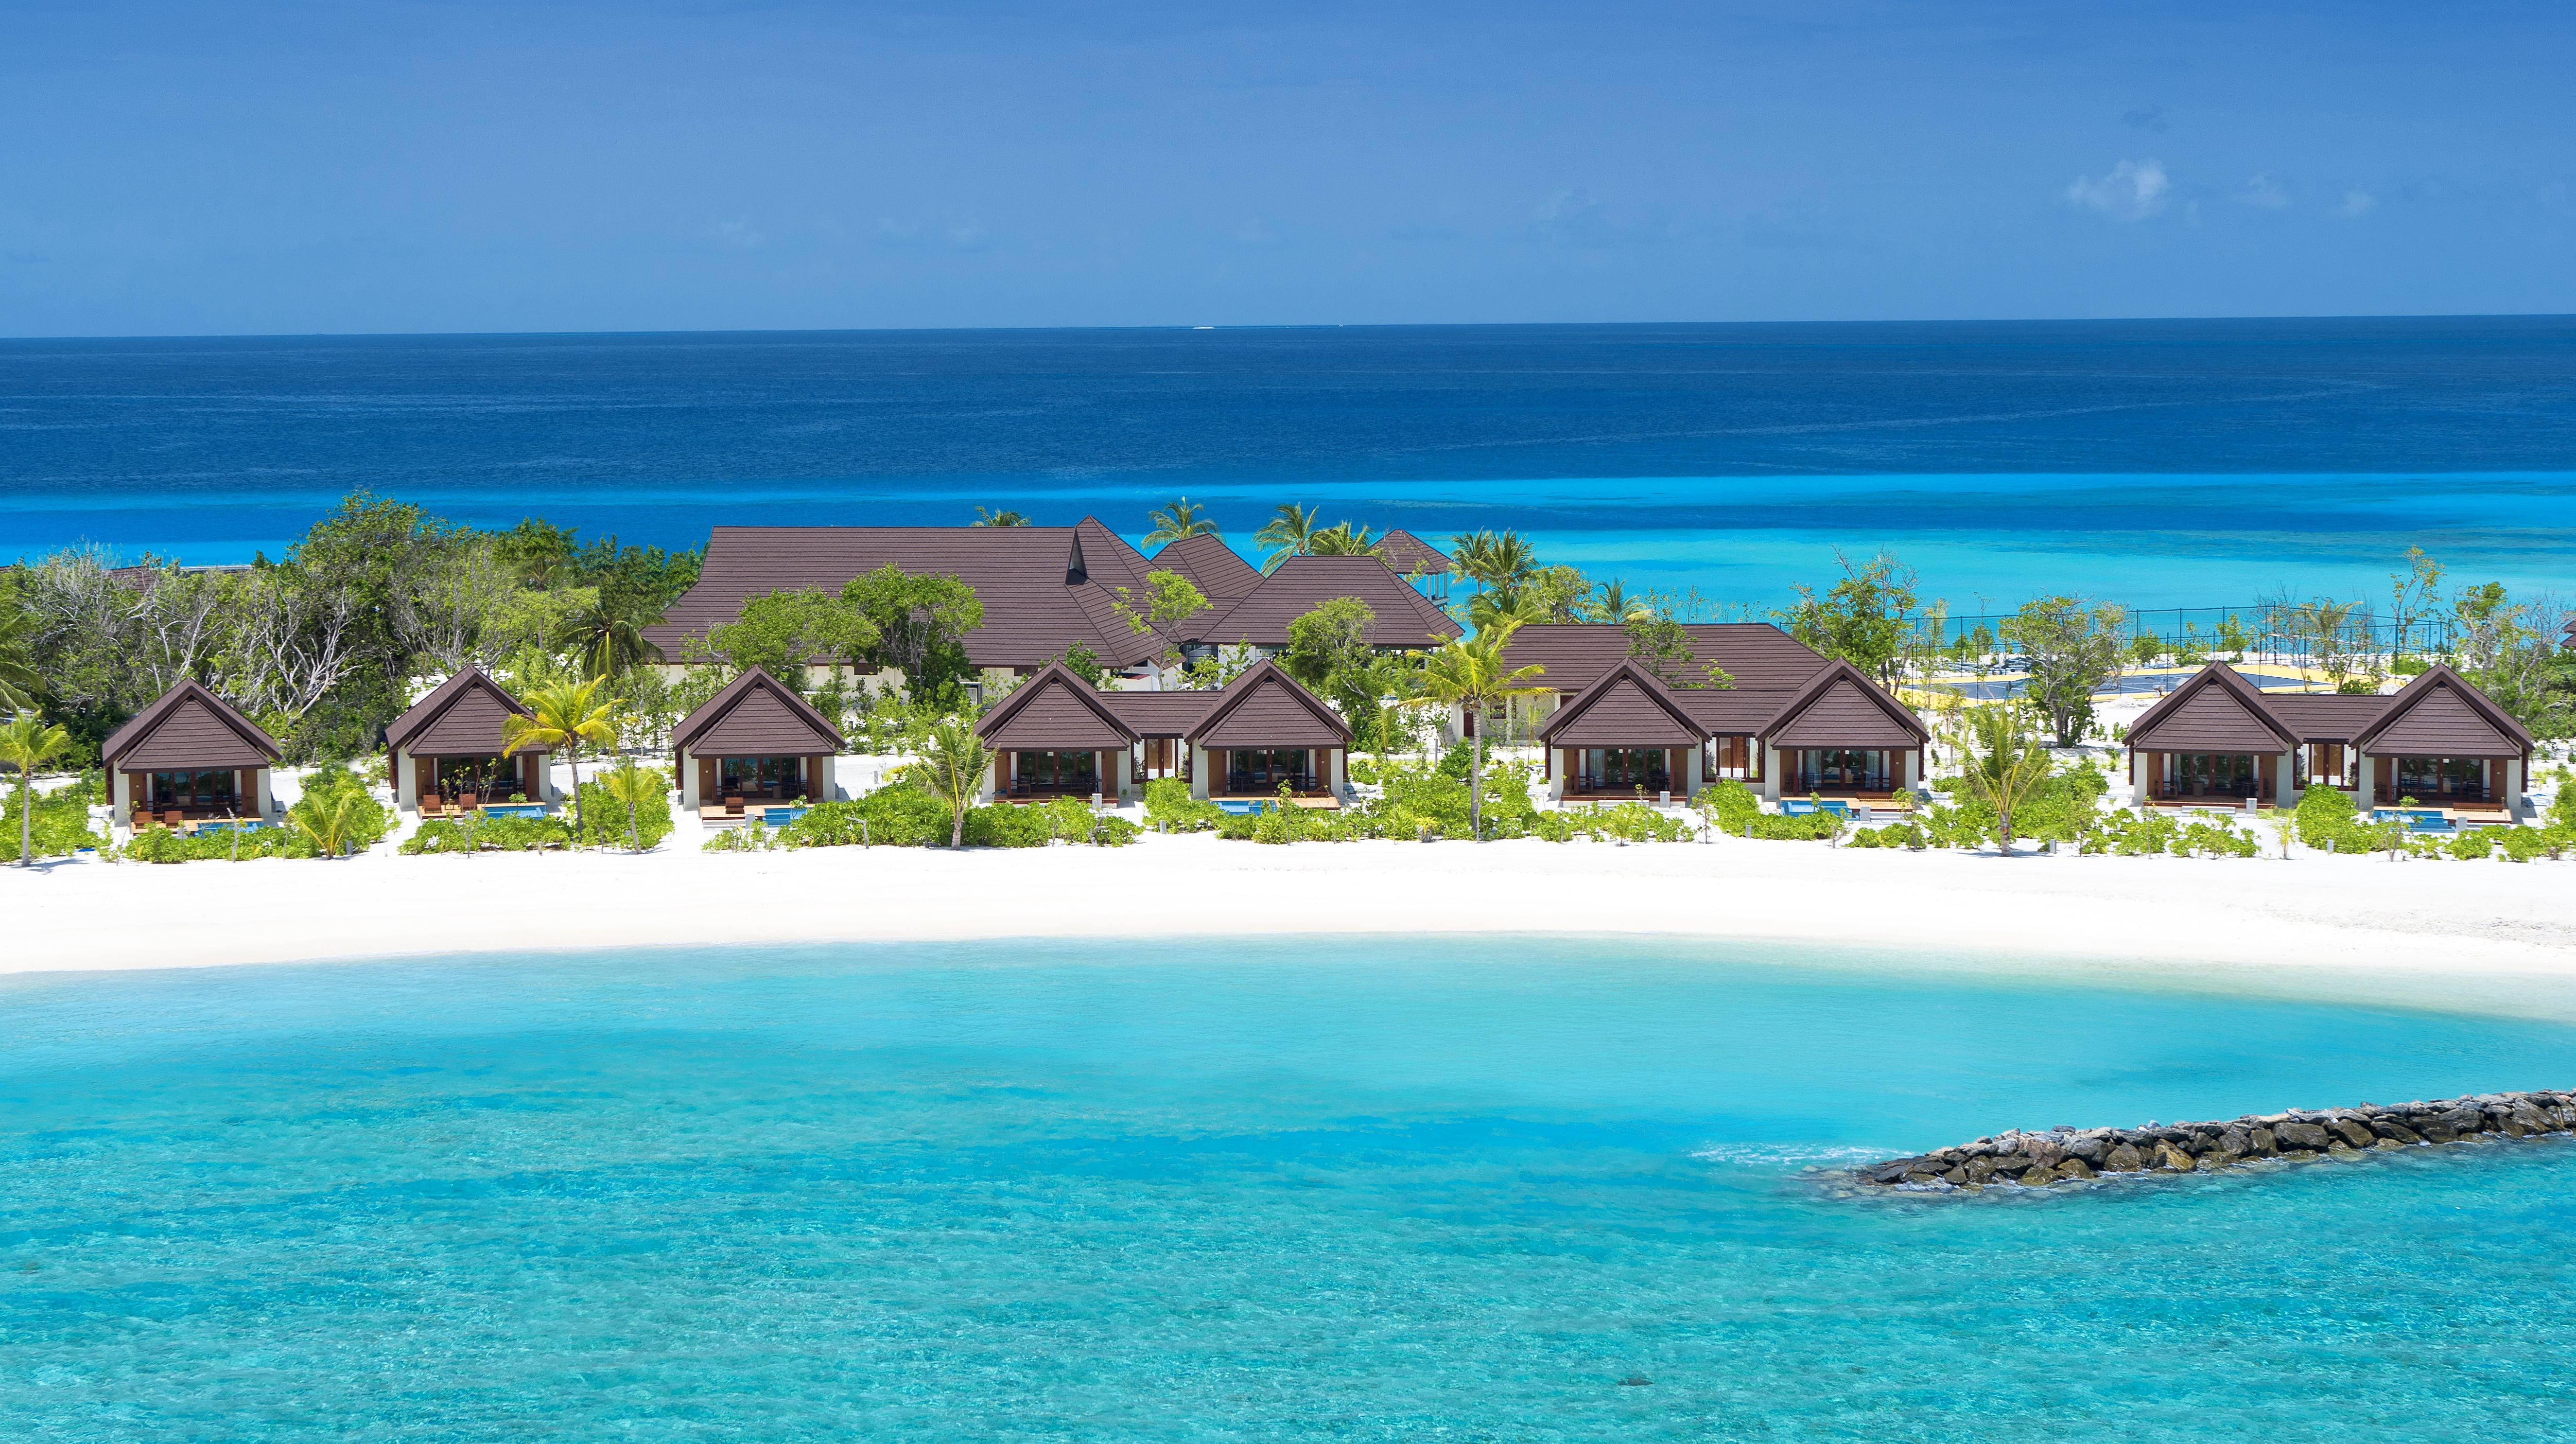 Maldives All Inclusive Resorts Varu By Atmosphere